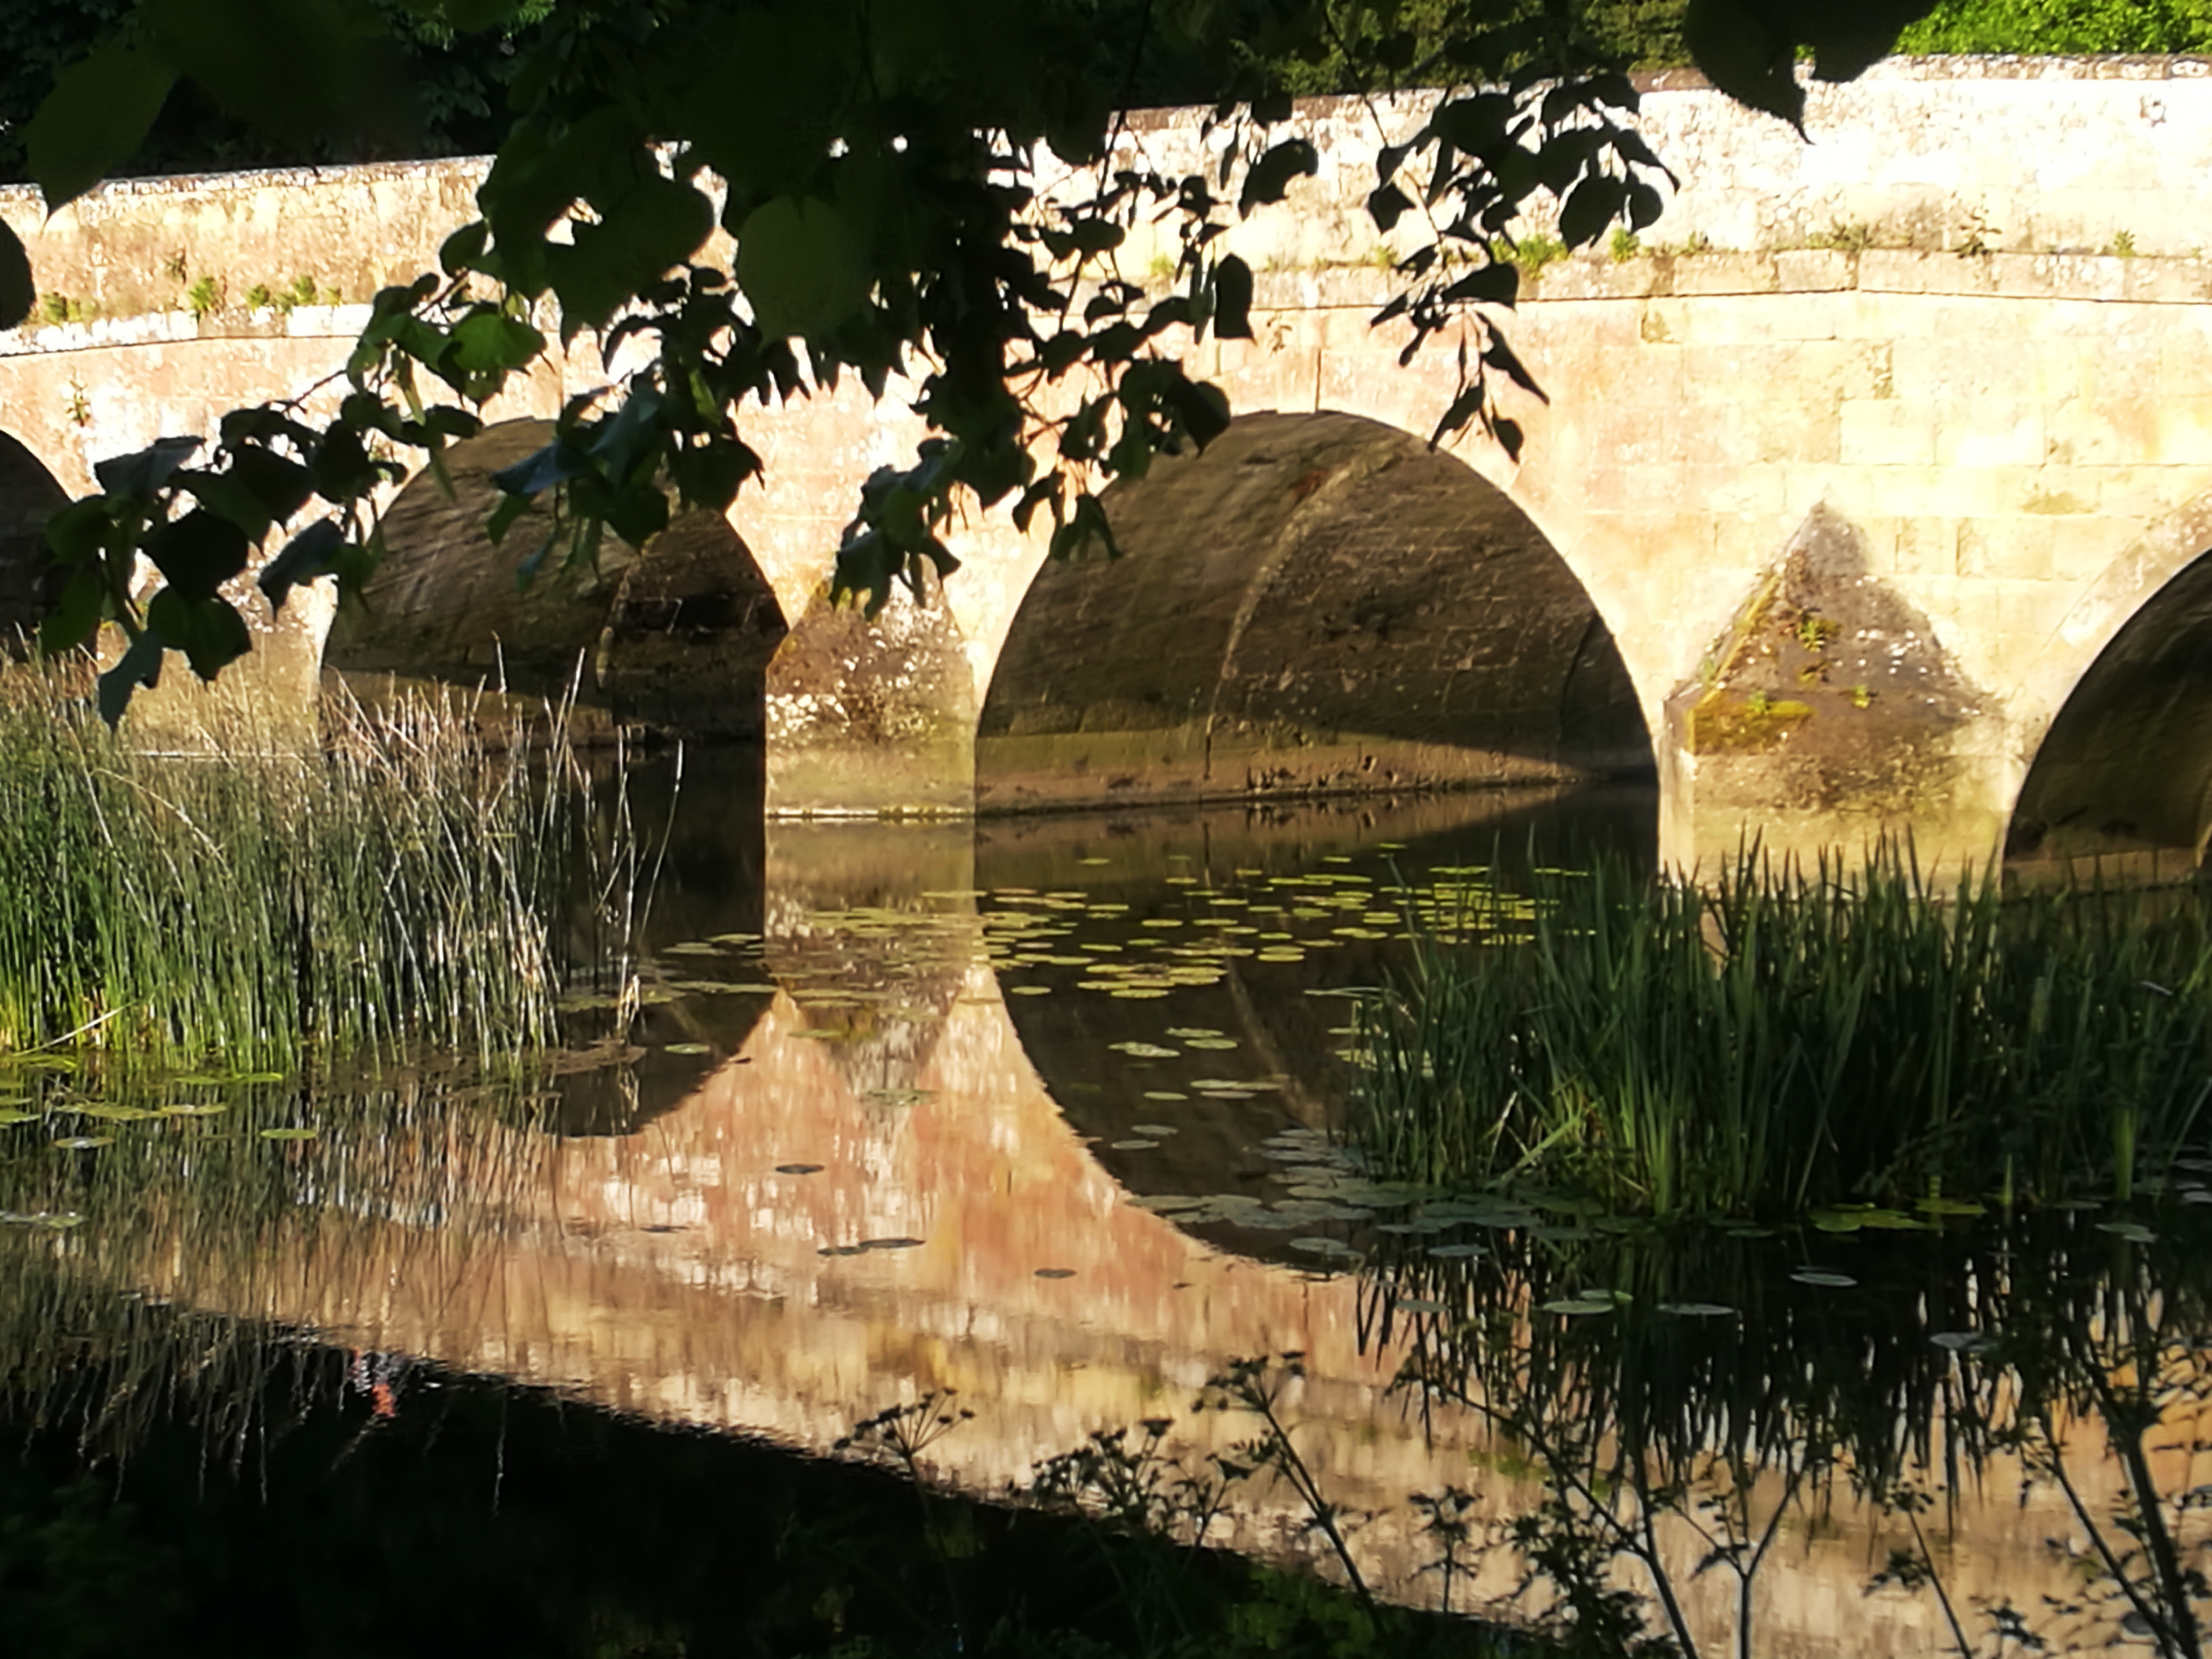 Blandford bridge in the early morning sun